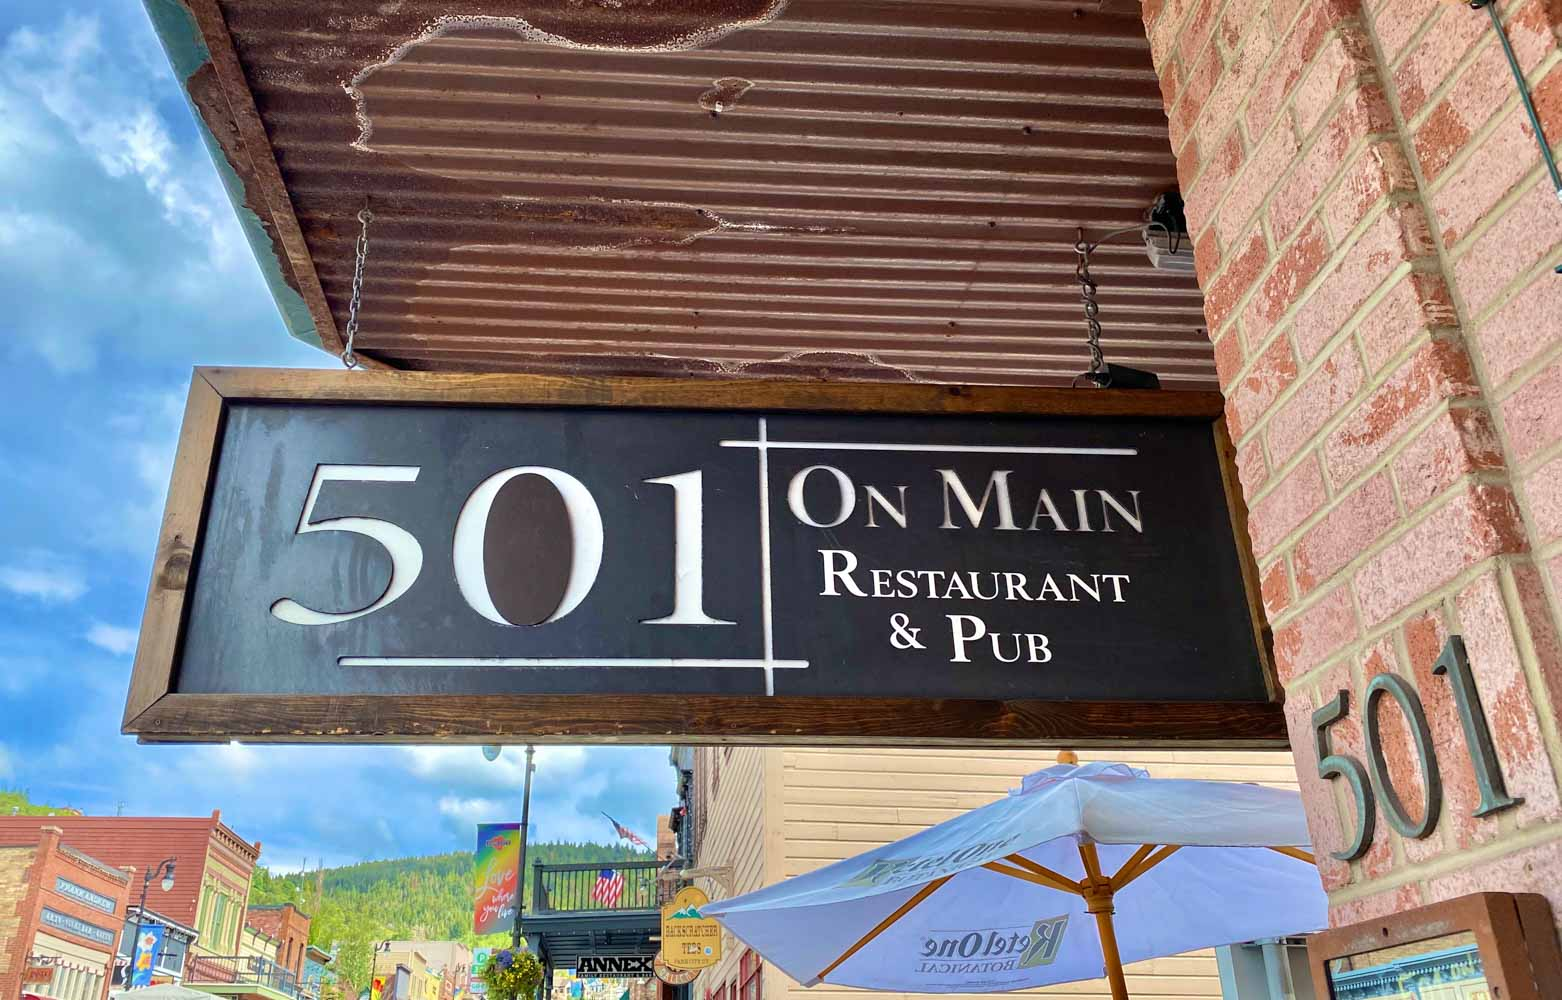 501 Main and 350 Main are two delectable restaurant options